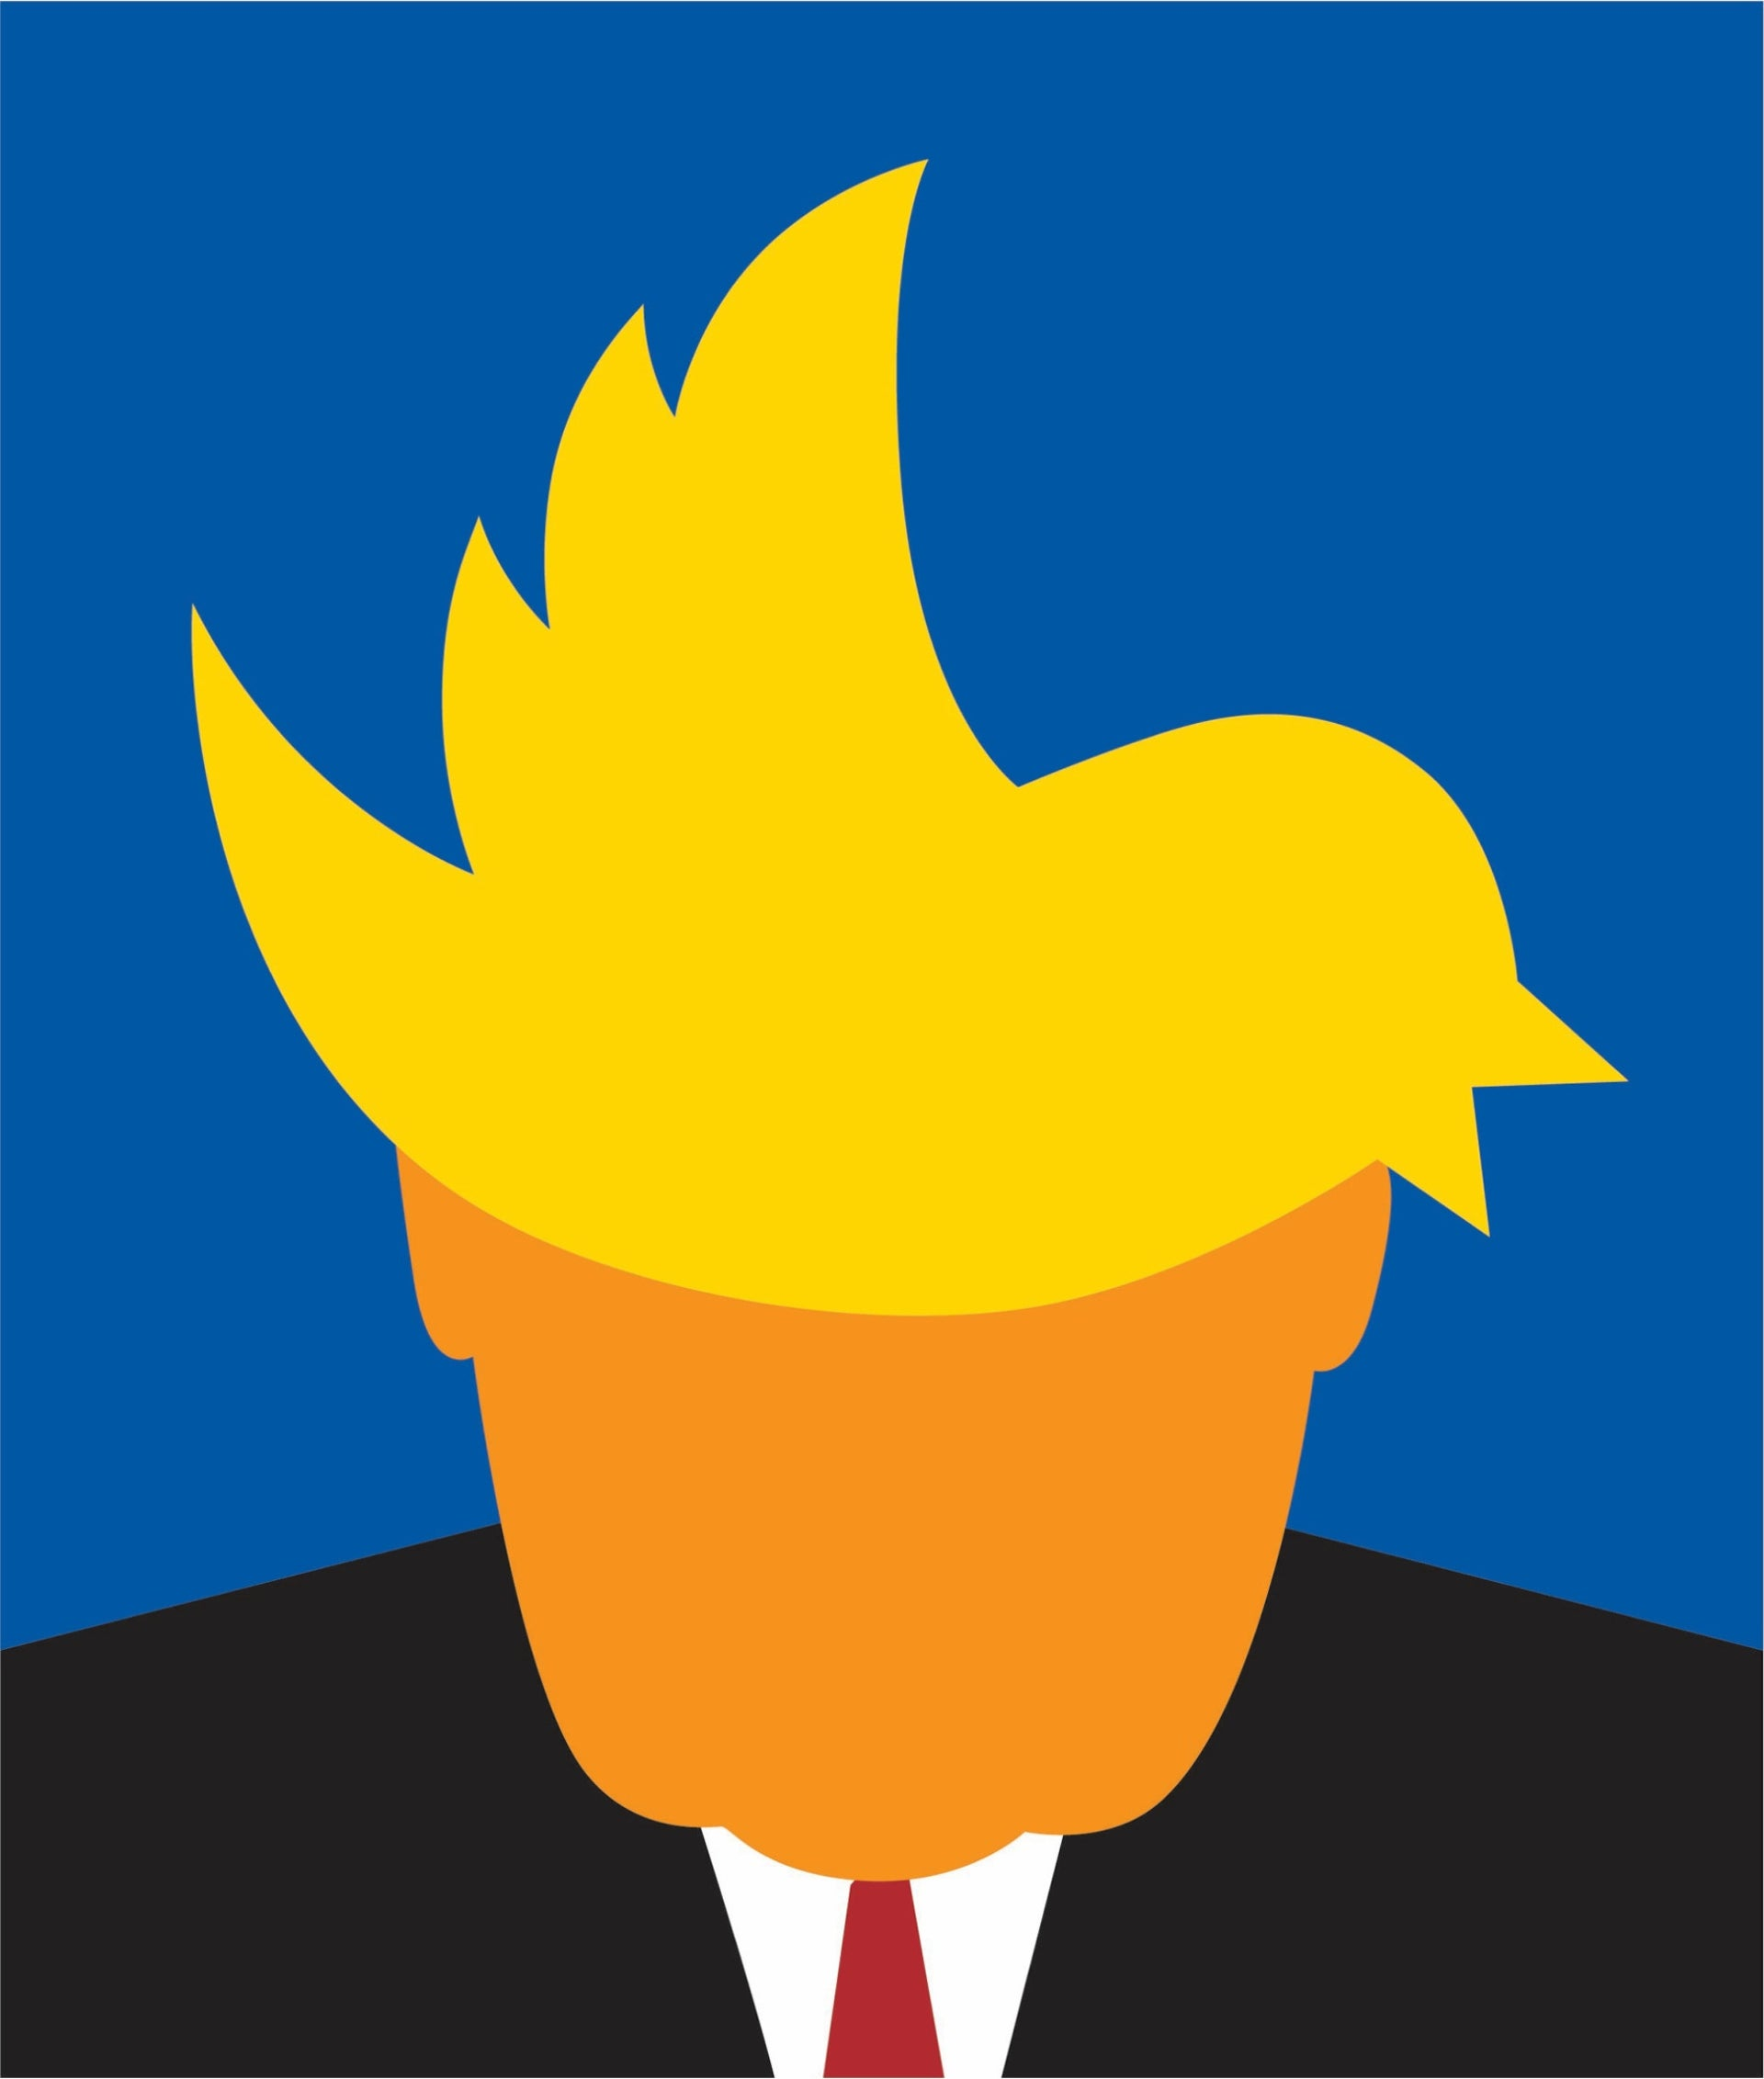 A Noma Bar illustration of U.S. President Donald Trump sporting a dovish haircut for a Politico report on Trump and the media, May/June 2017